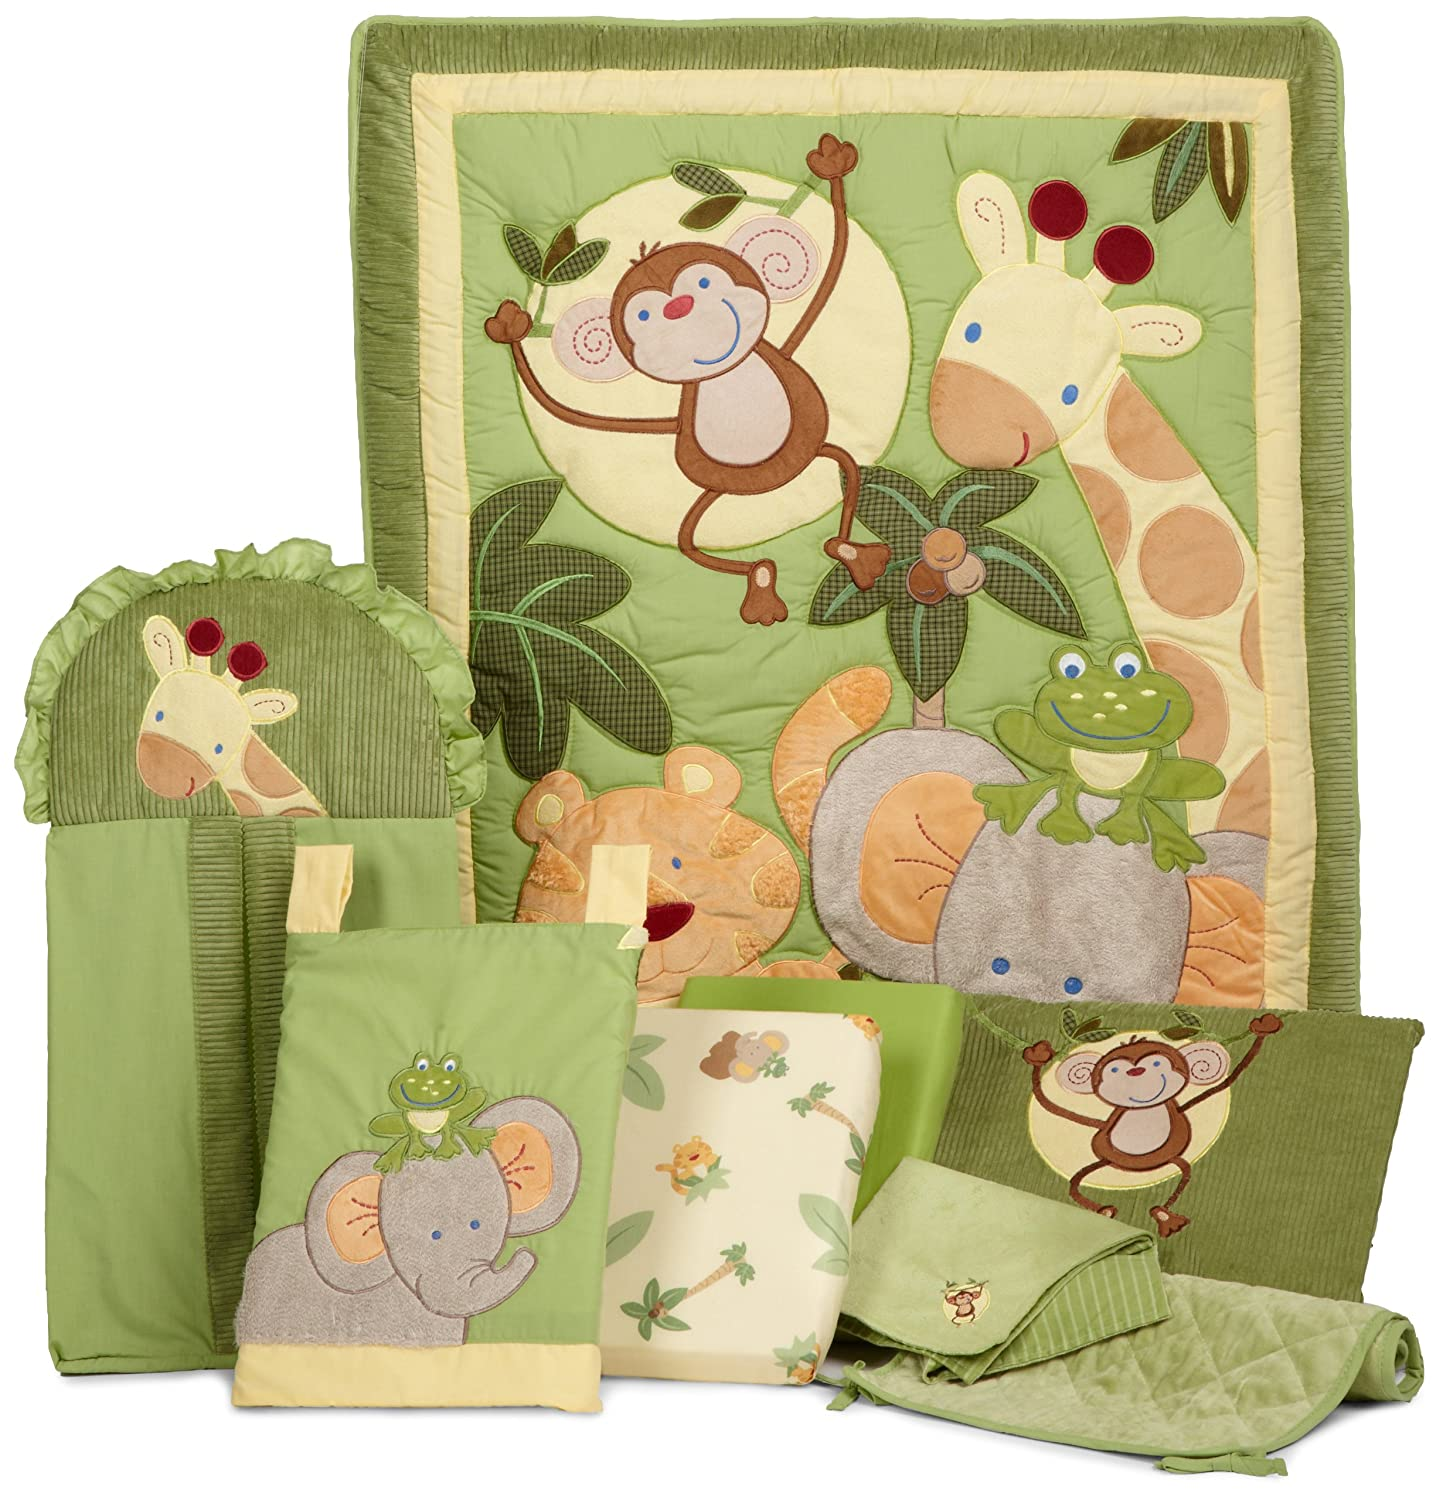 NoJo Jungle Babies 8 Piece Bedding Set Crown Craft Infant Products 3544608